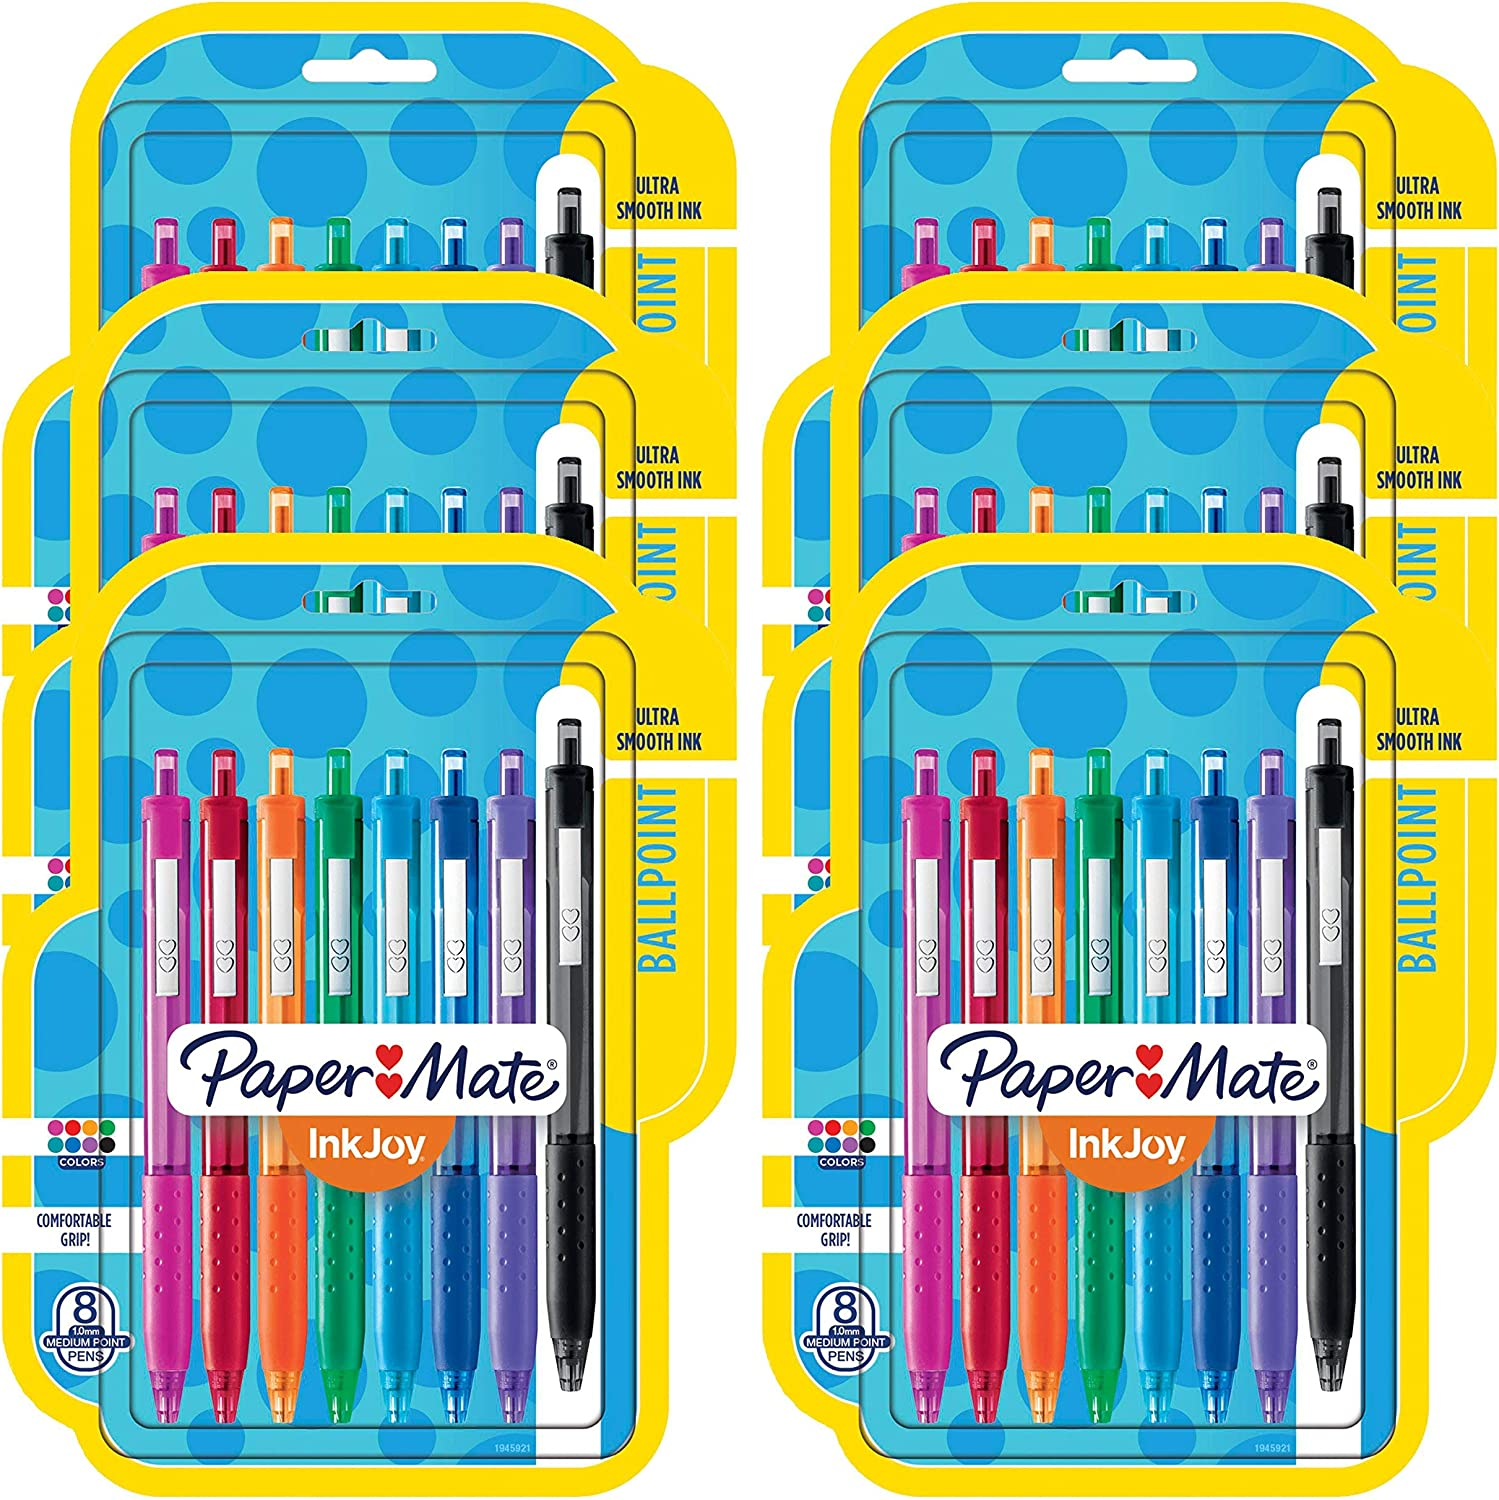 Assorted 48 Count Medium Point Retractable Ballpoint Pens - New 6 Packs of 8